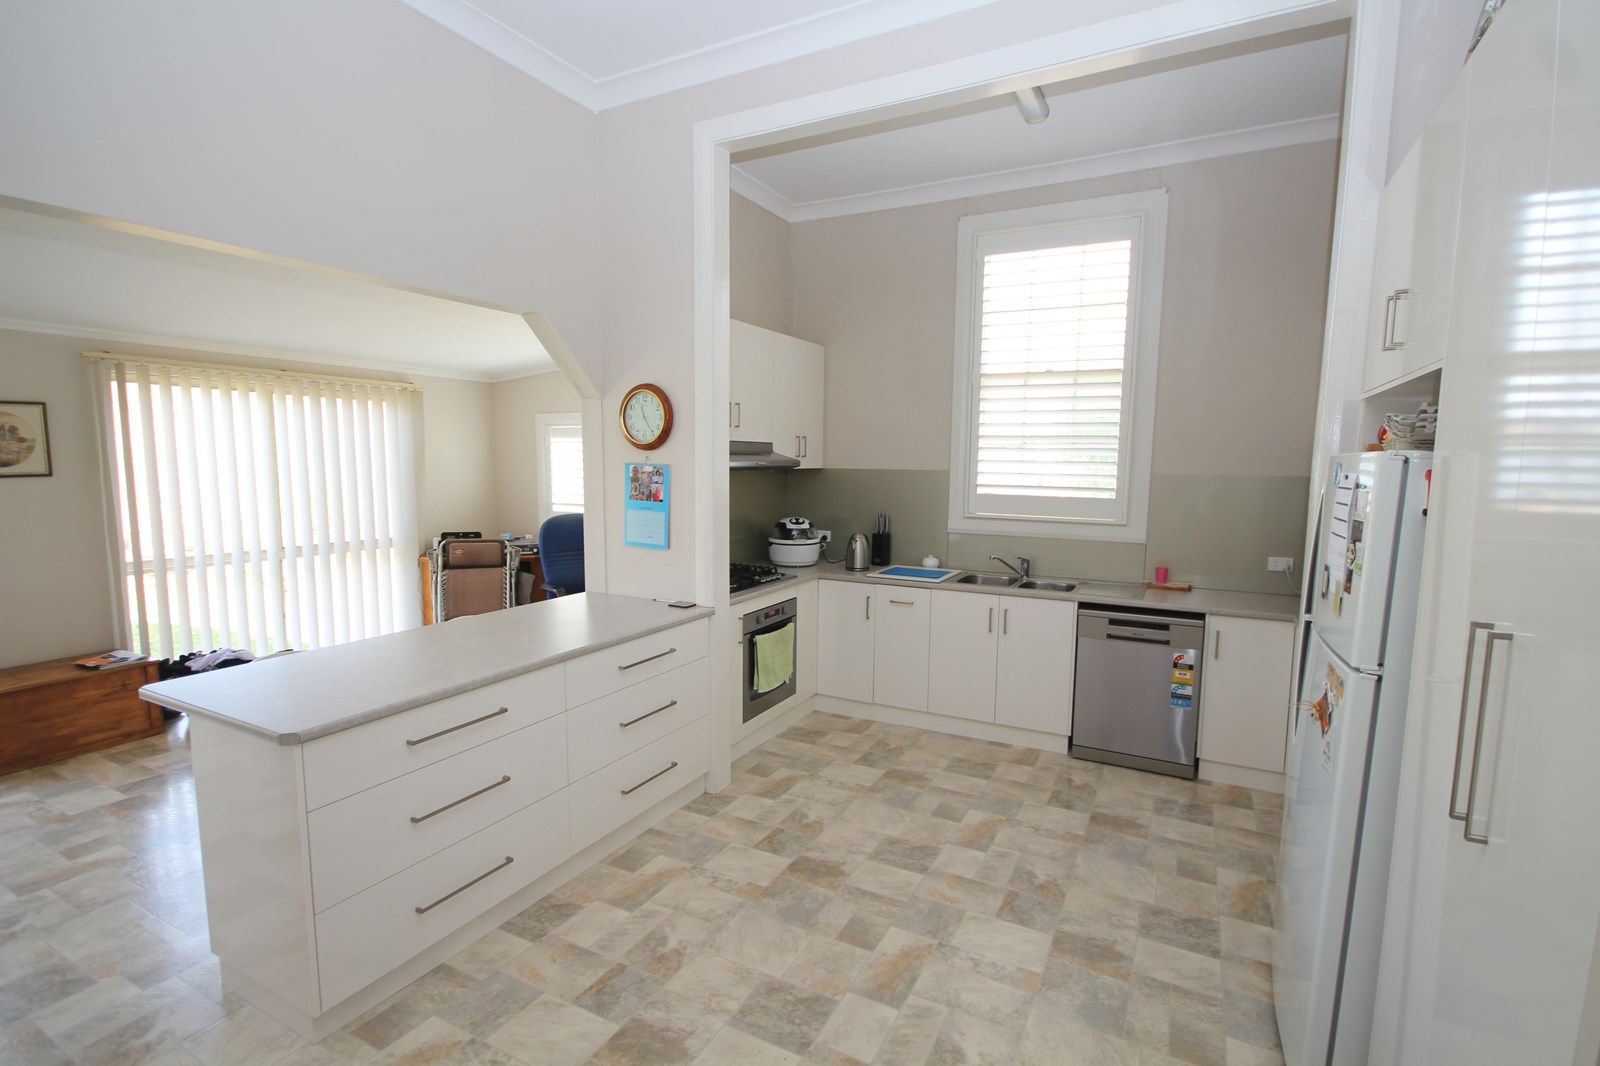 3660 Lockhart/The Rock Road, The Rock NSW 2655, Image 1